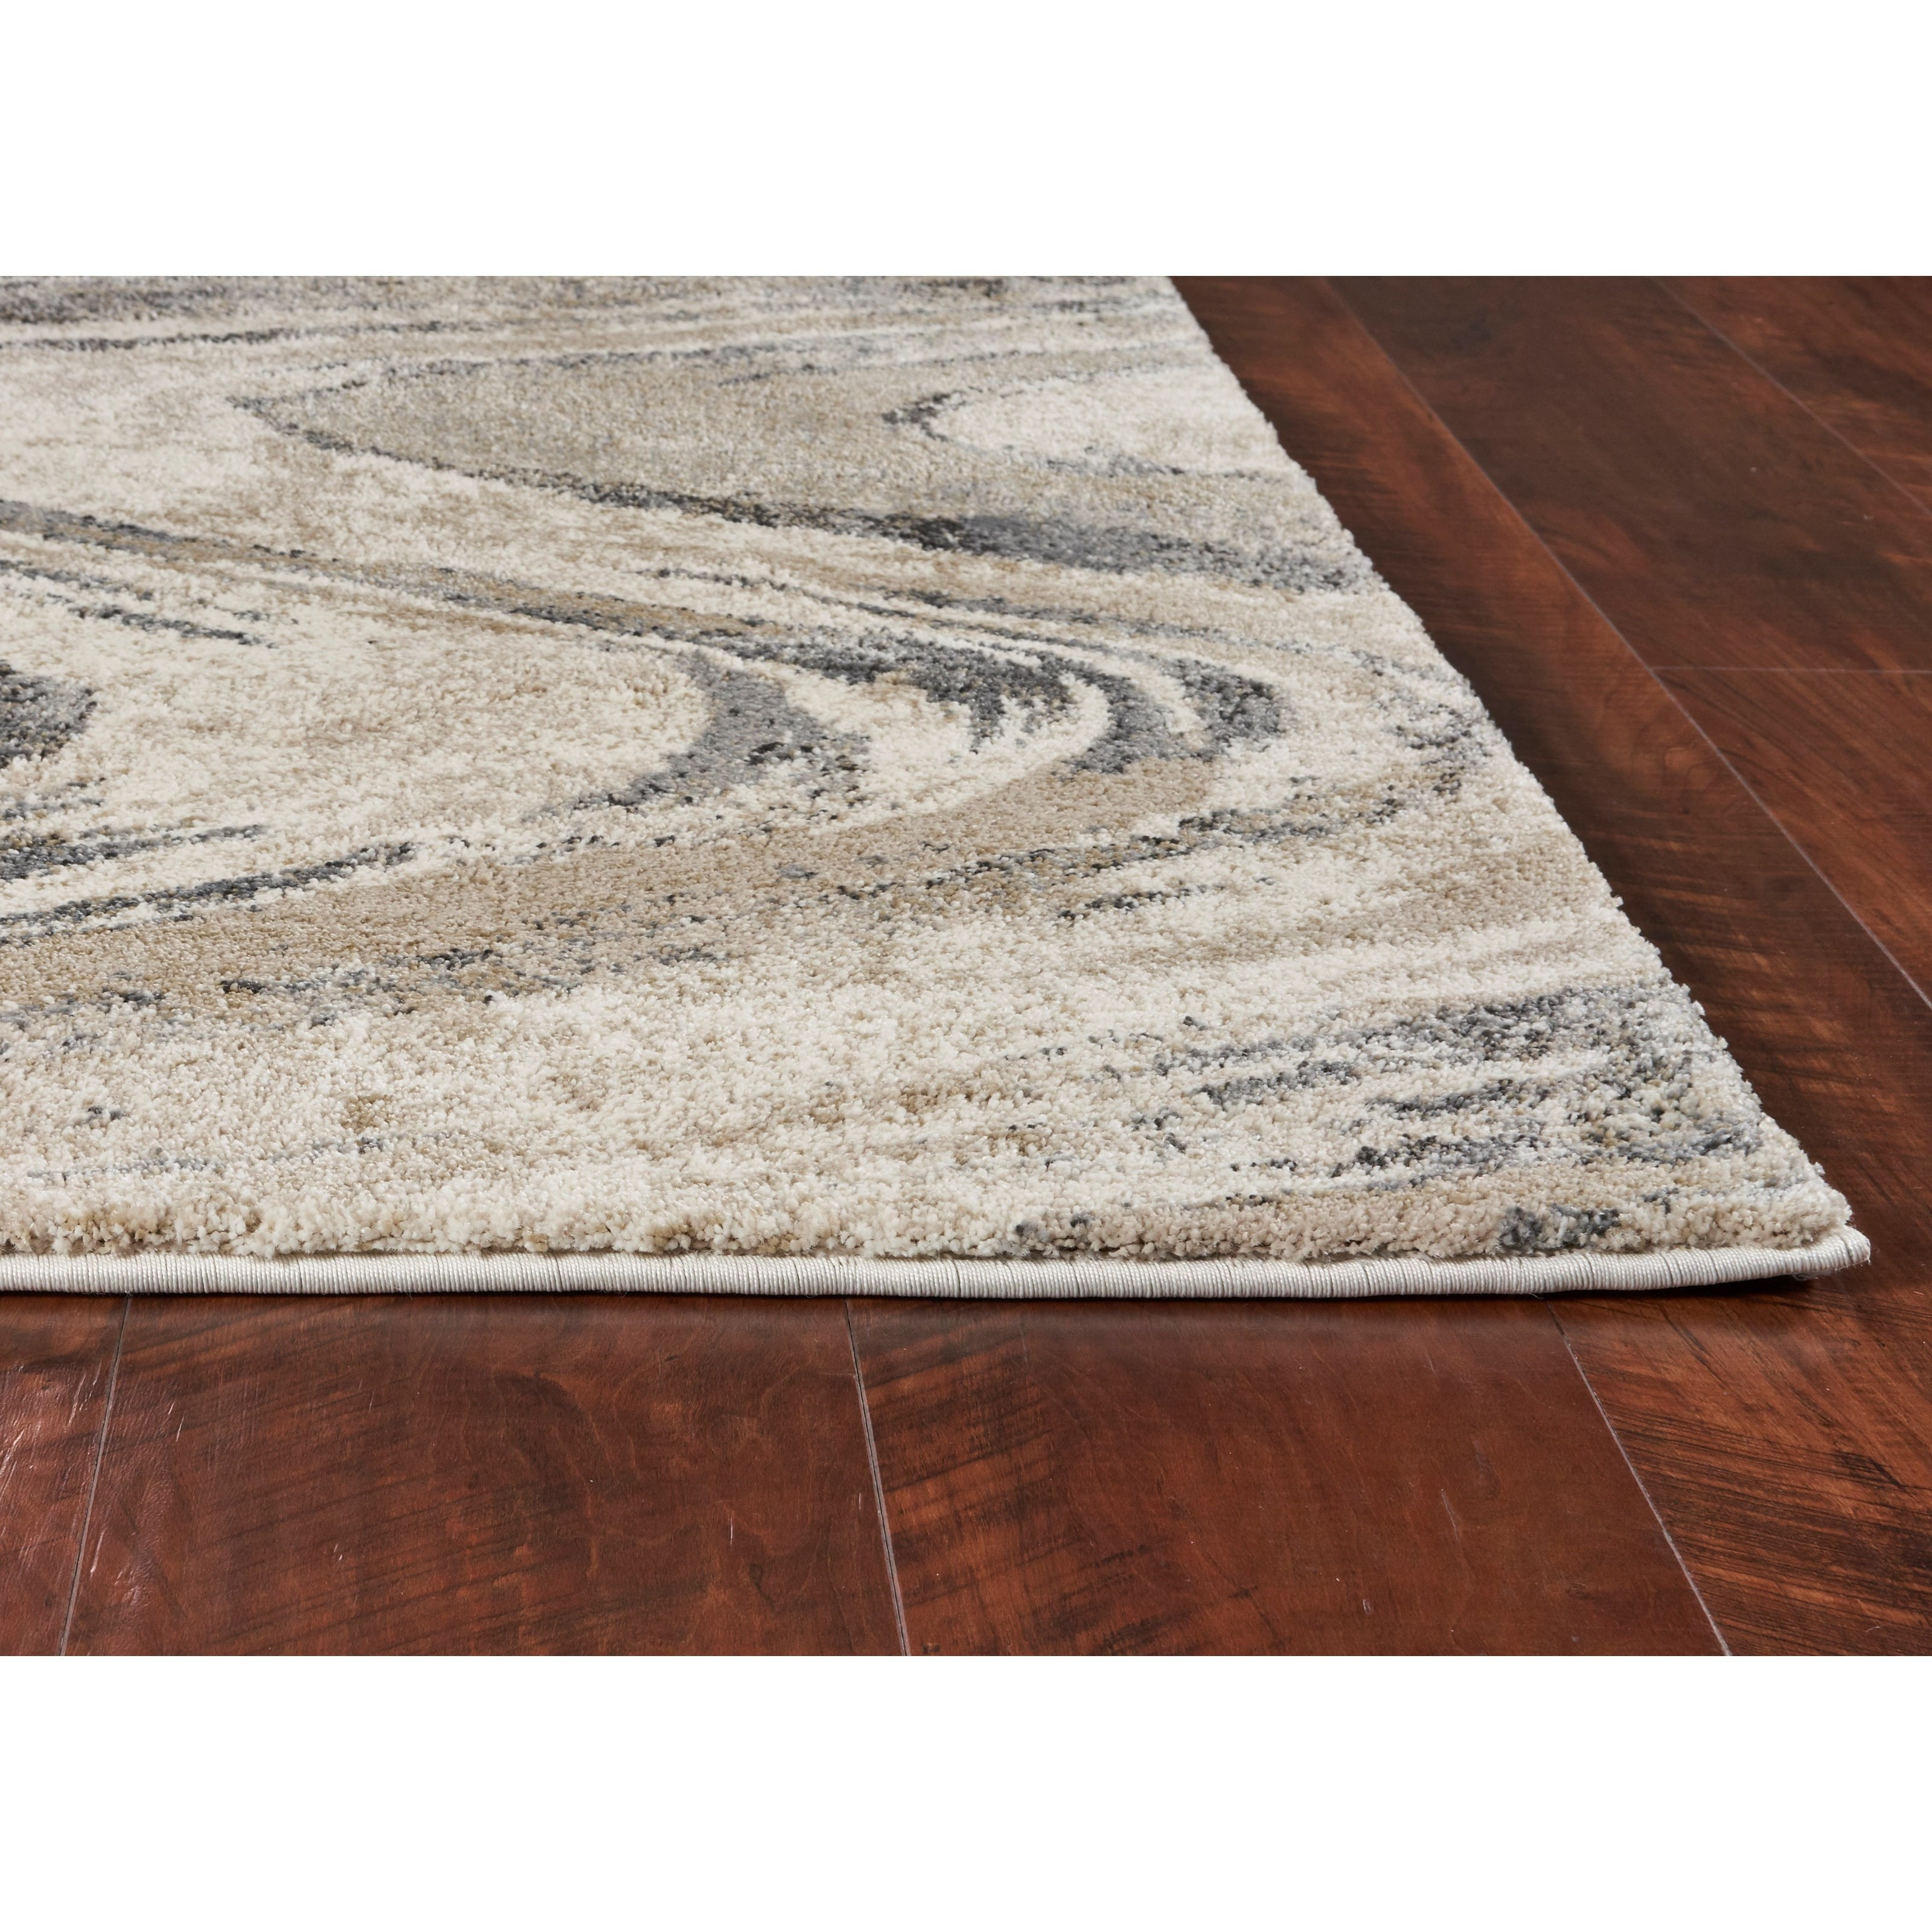 "Hue 2'2"" x 7'6"" Runner Natural Groove Rug by Kas at Zak's Home"